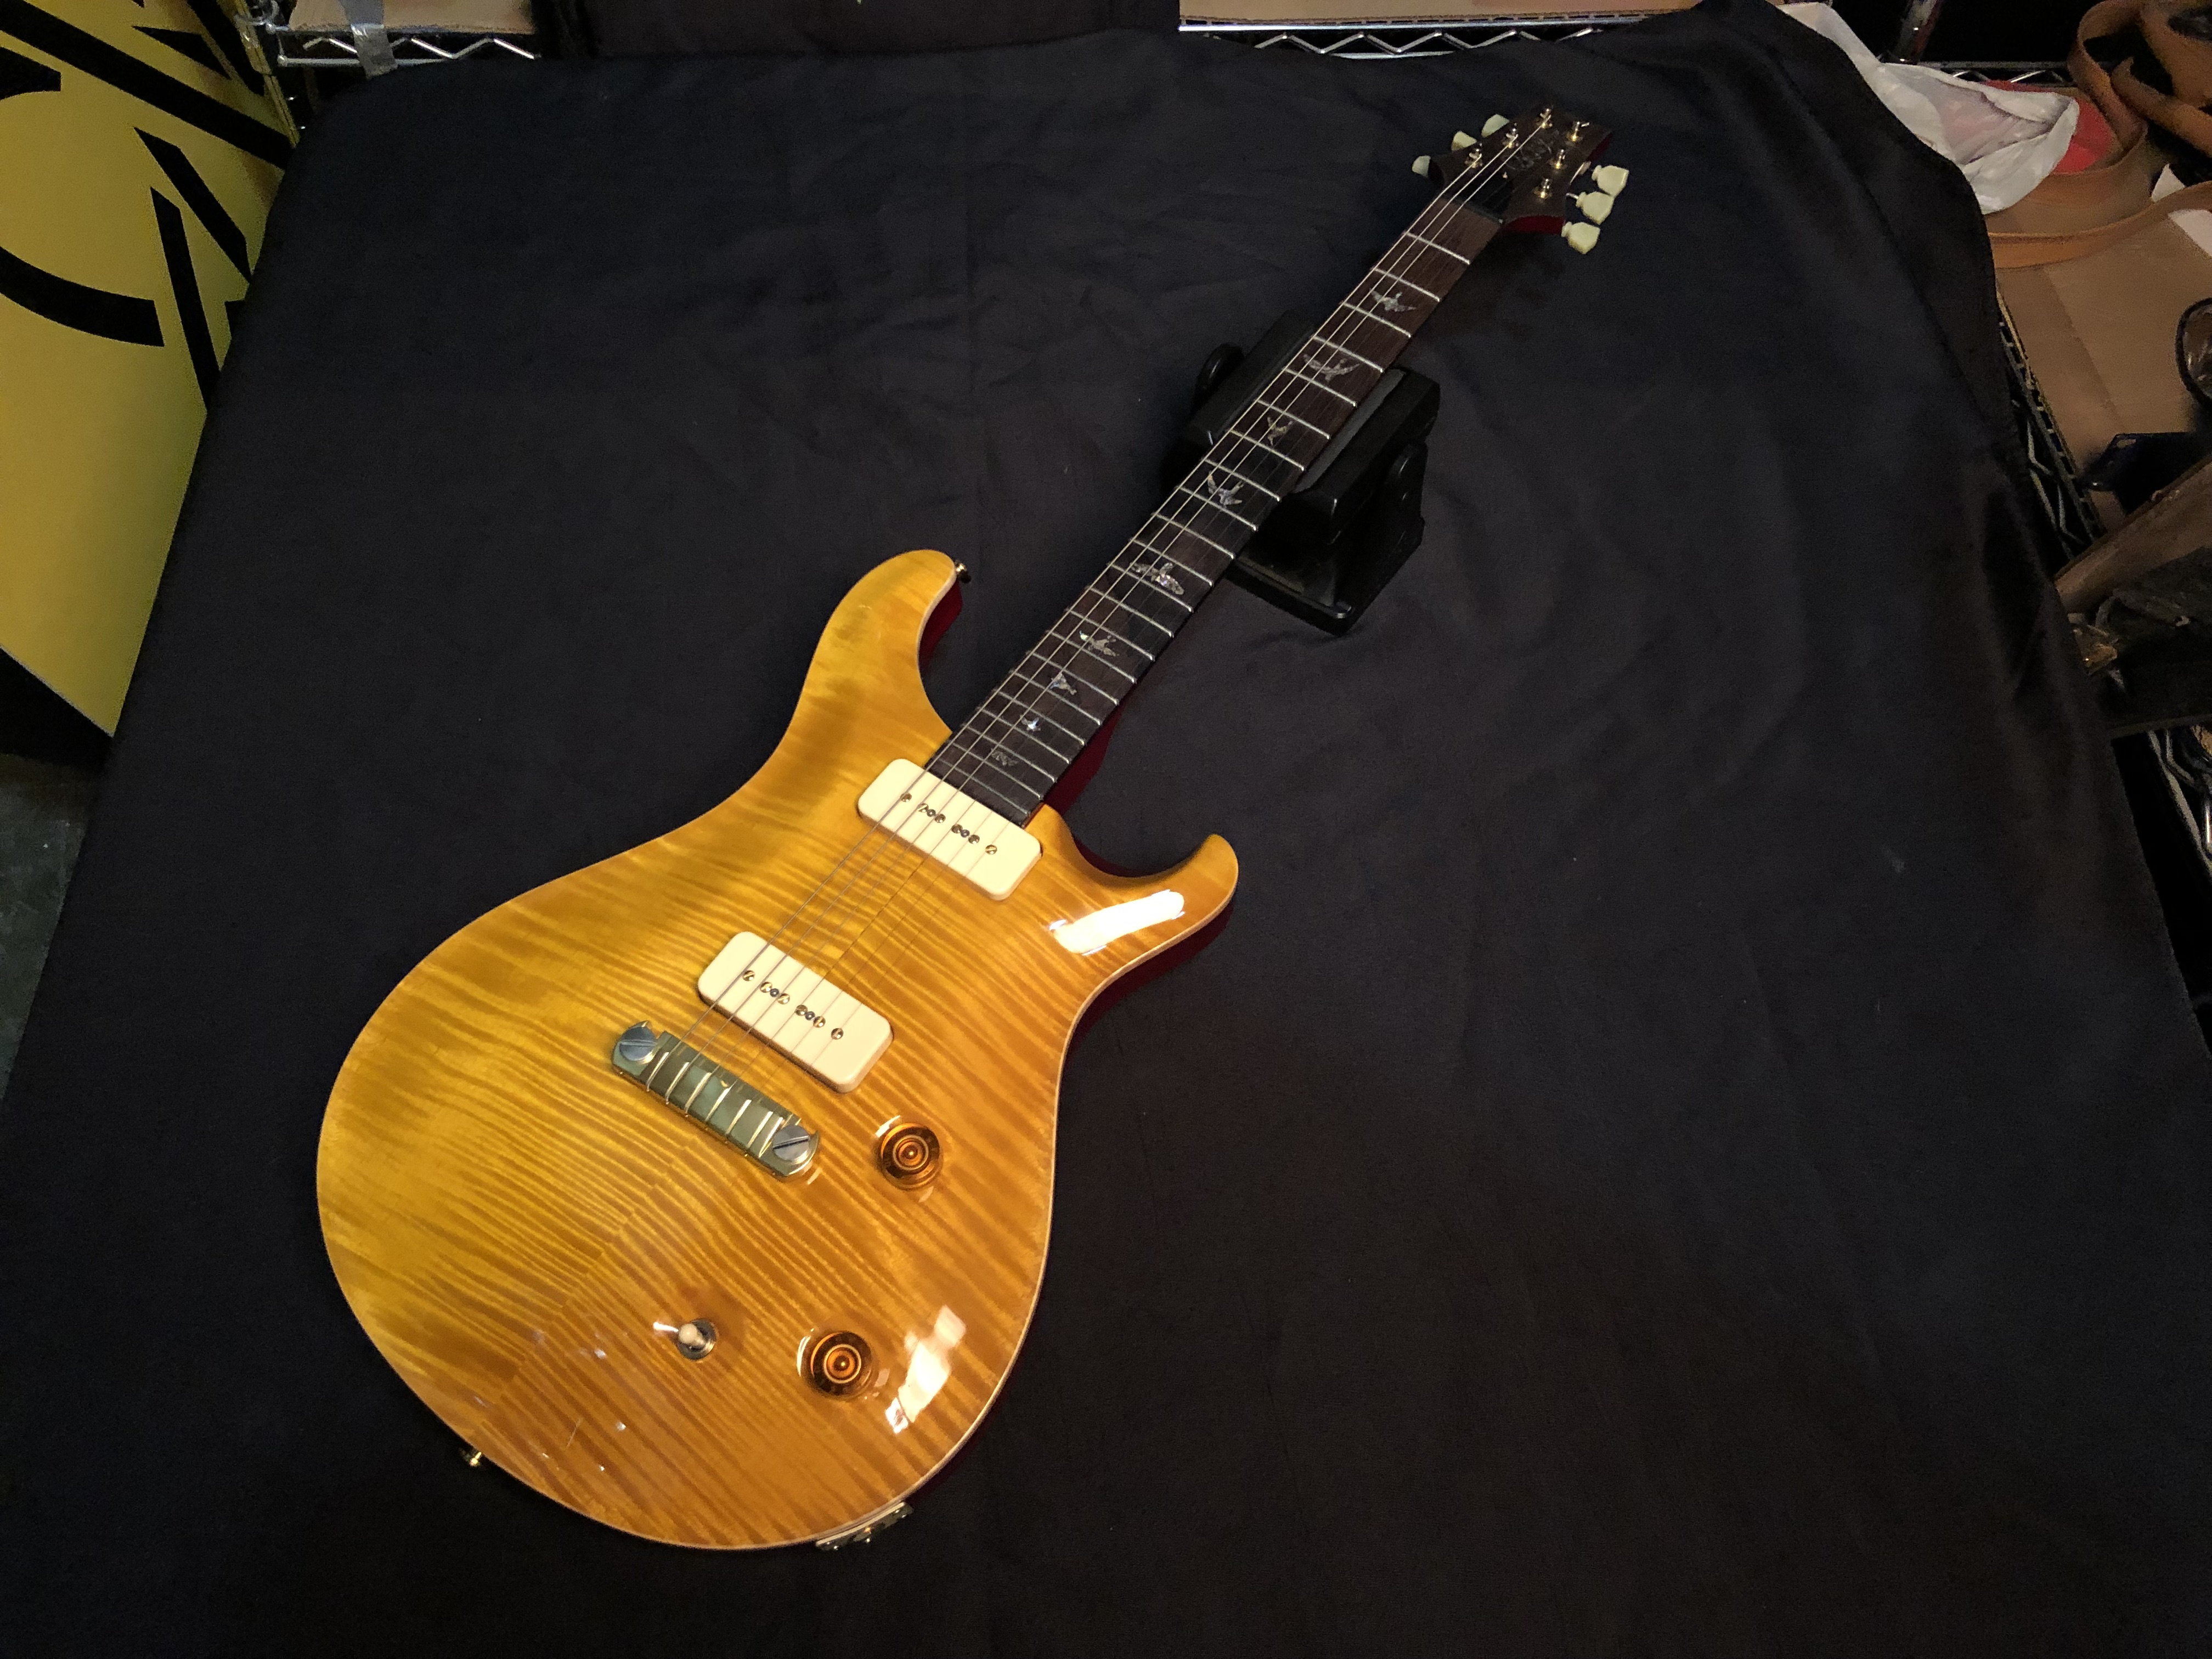 2005 PAUL REED SMITH - MCARTY 10 BRAZILIAN LIMITED EDITION #481 - ELECTRIC GUITAR